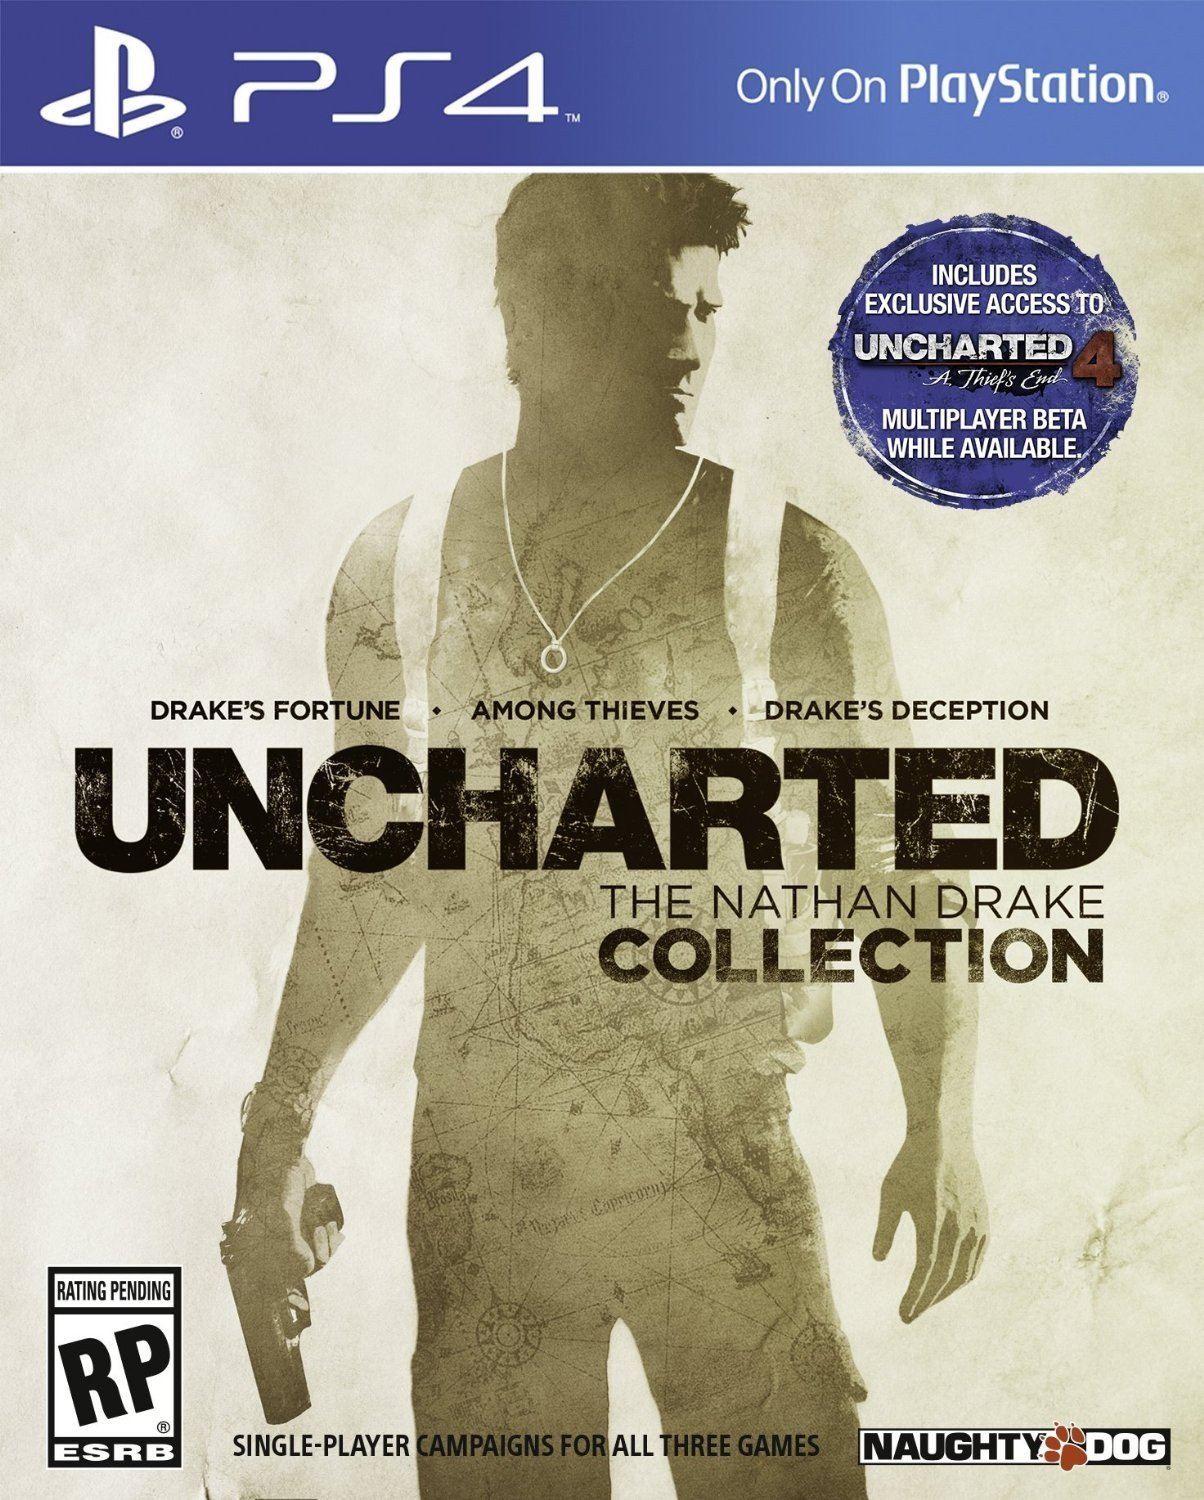 UNCHARTED: The Nathan Drake Collection 神秘海域:奈森•德雷克合集